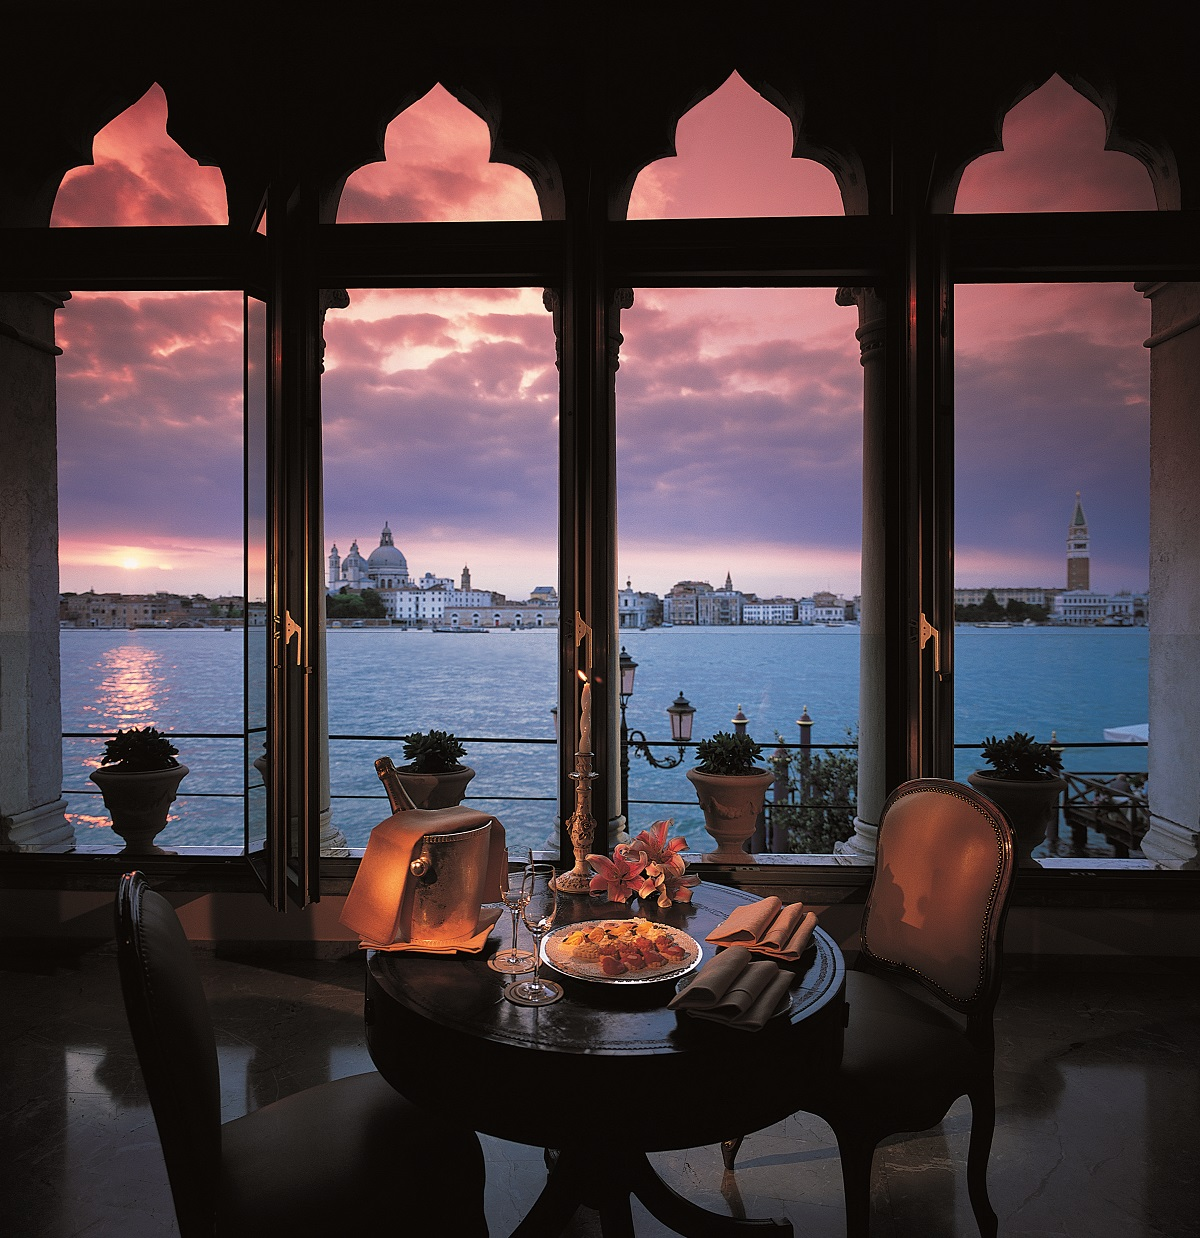 Live Like a King and Queen in a Venetian Palazzo